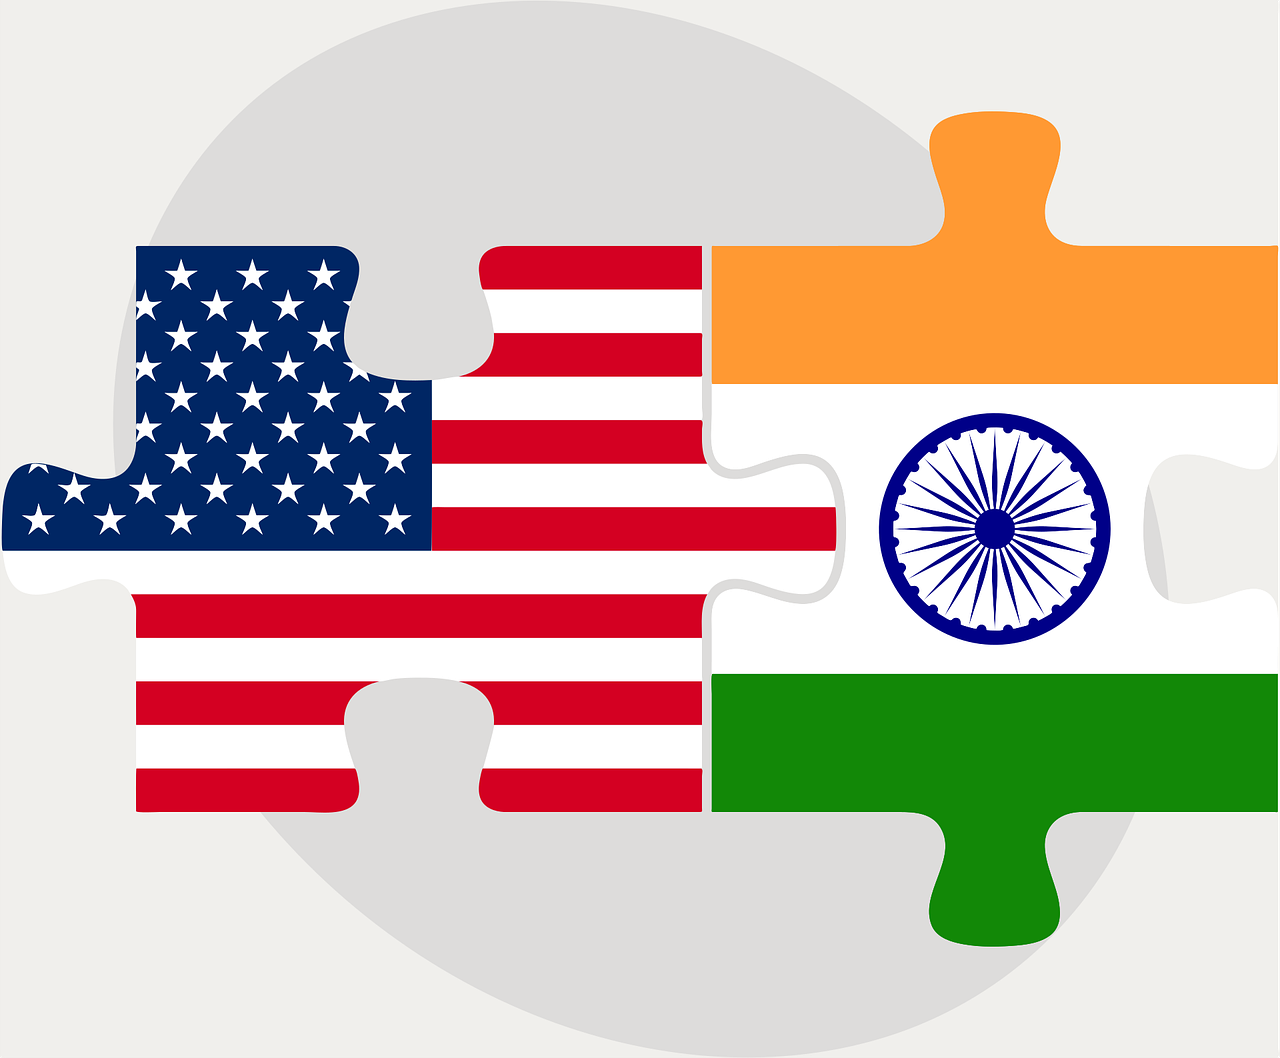 Flags India United States - Free vector graphic on Pixabay